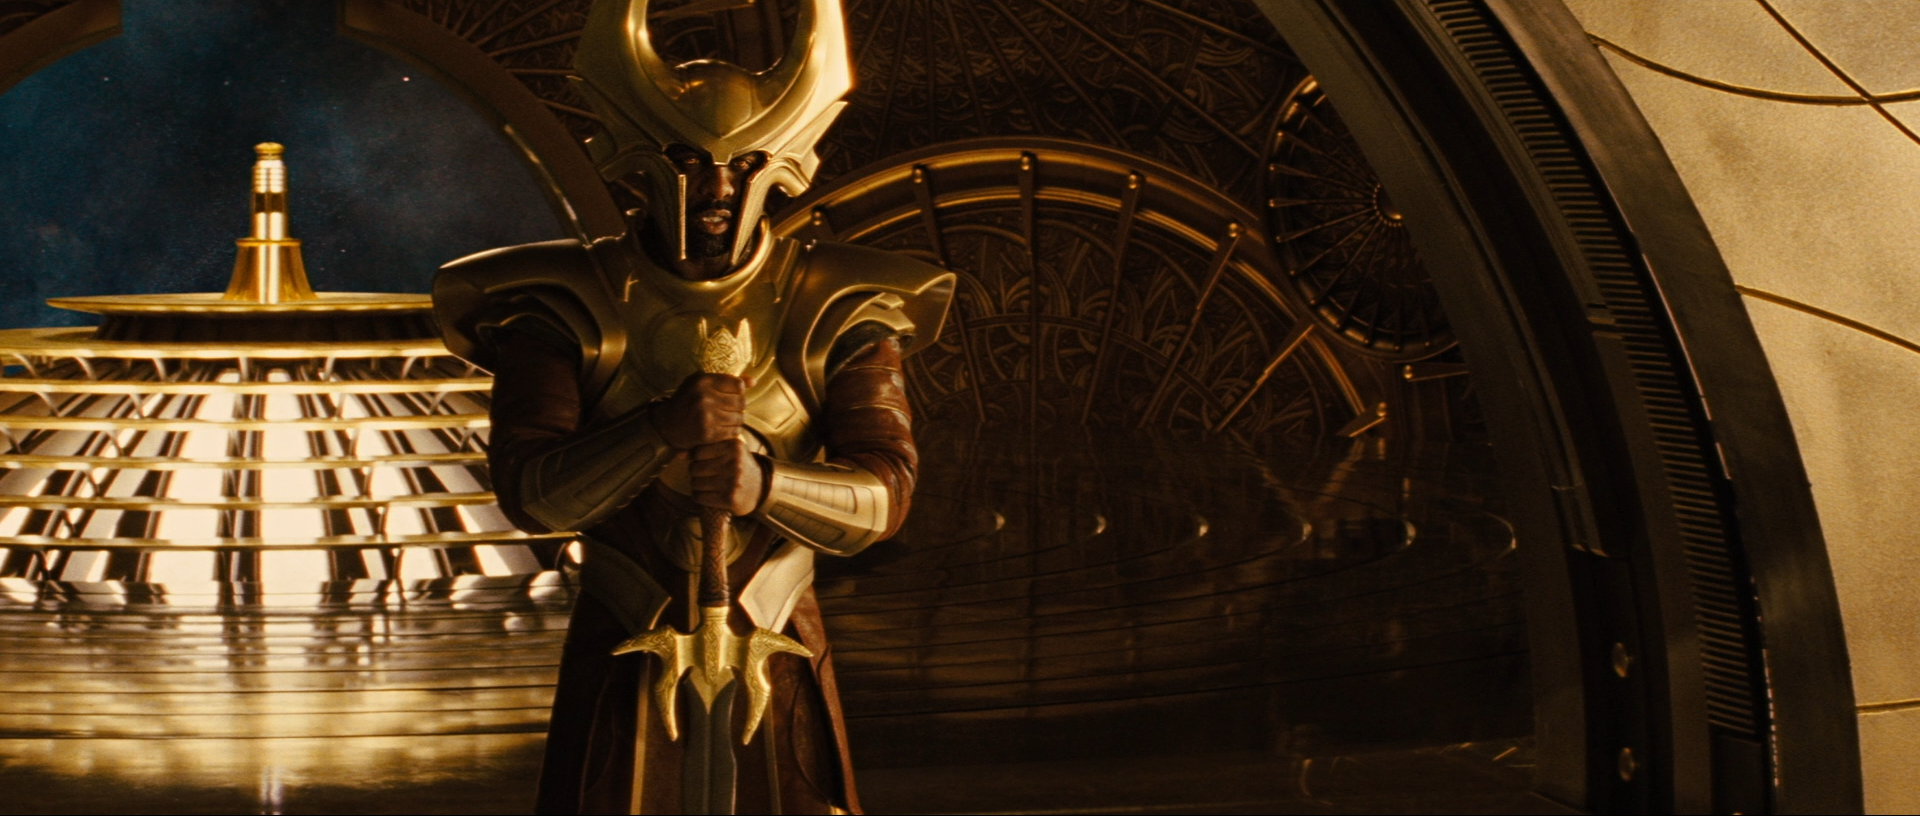 Heimdall | Marvel Cinematic Universe Wiki | Fandom